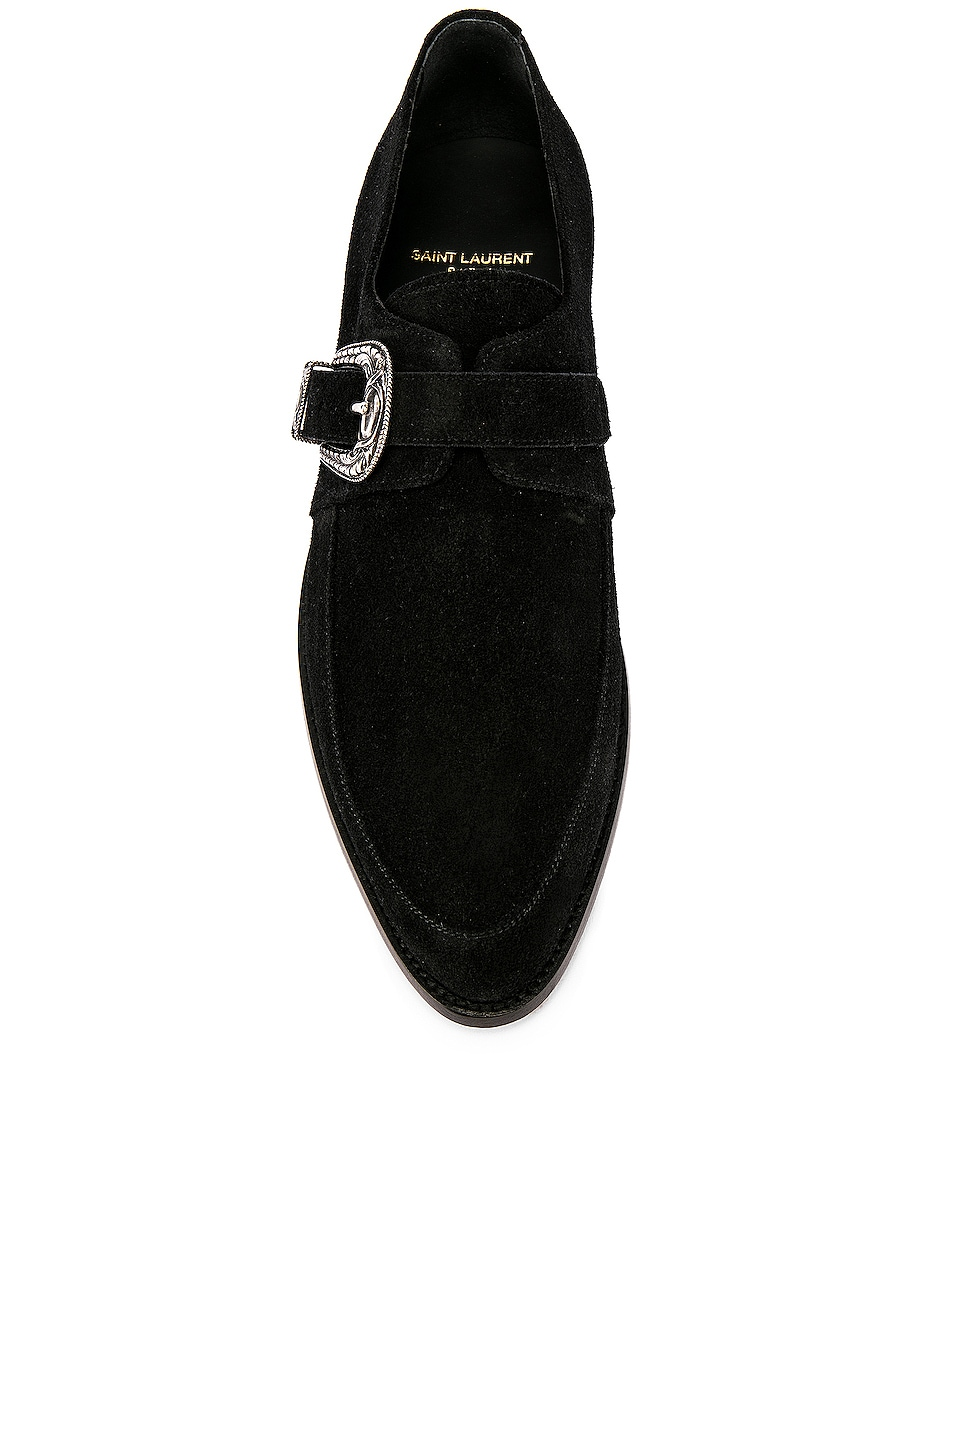 Image 4 of Saint Laurent Charles Dress Shoes in Black